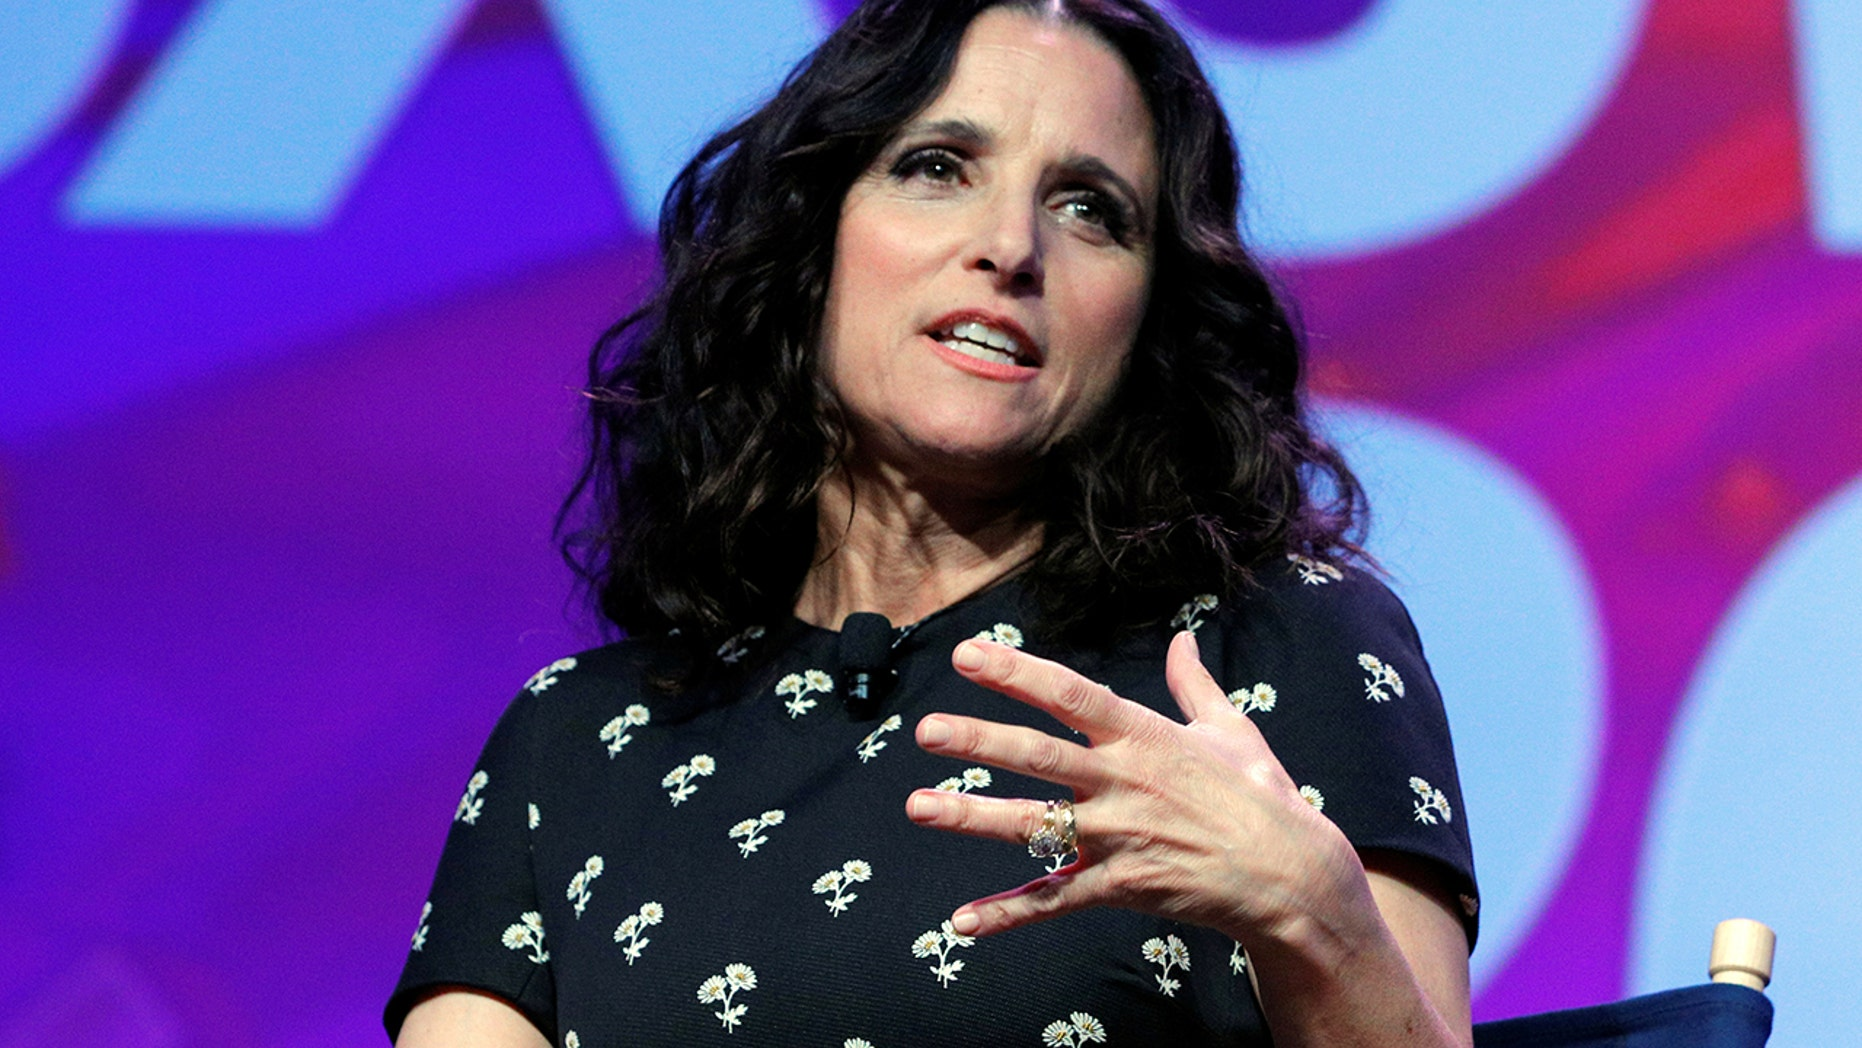 Julia Louis-Dreyfus Advocates for Health Care After Cancer